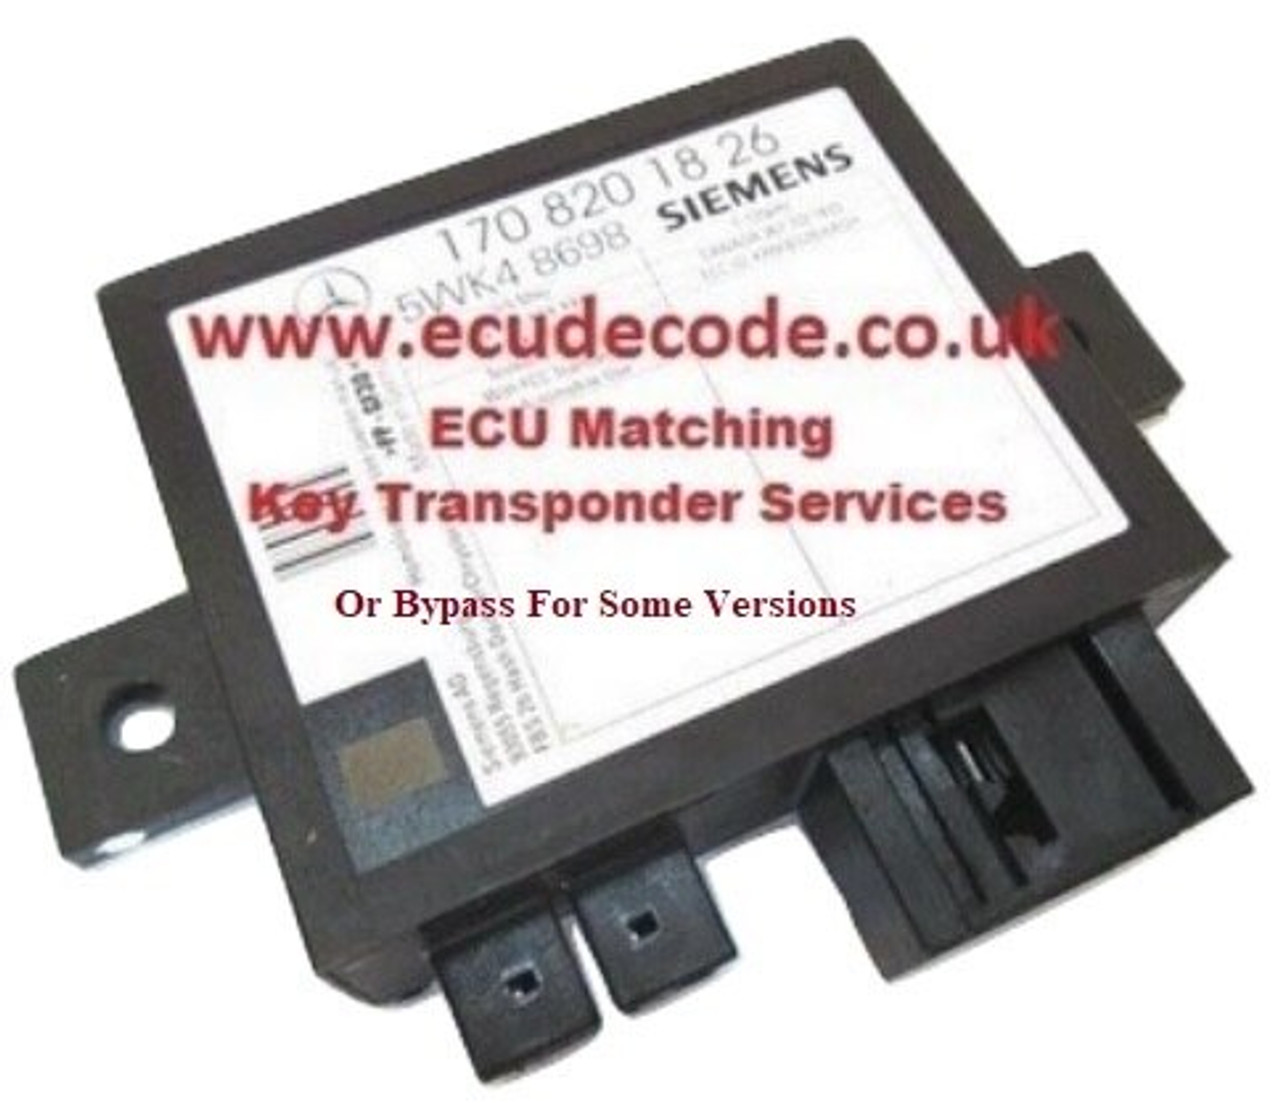 Immobiliser Bypass Versions With 1708201726 5WK48697 Siemens Immobiliser box ME2.8 & SIM4 LE From ECU Decode Limited  England